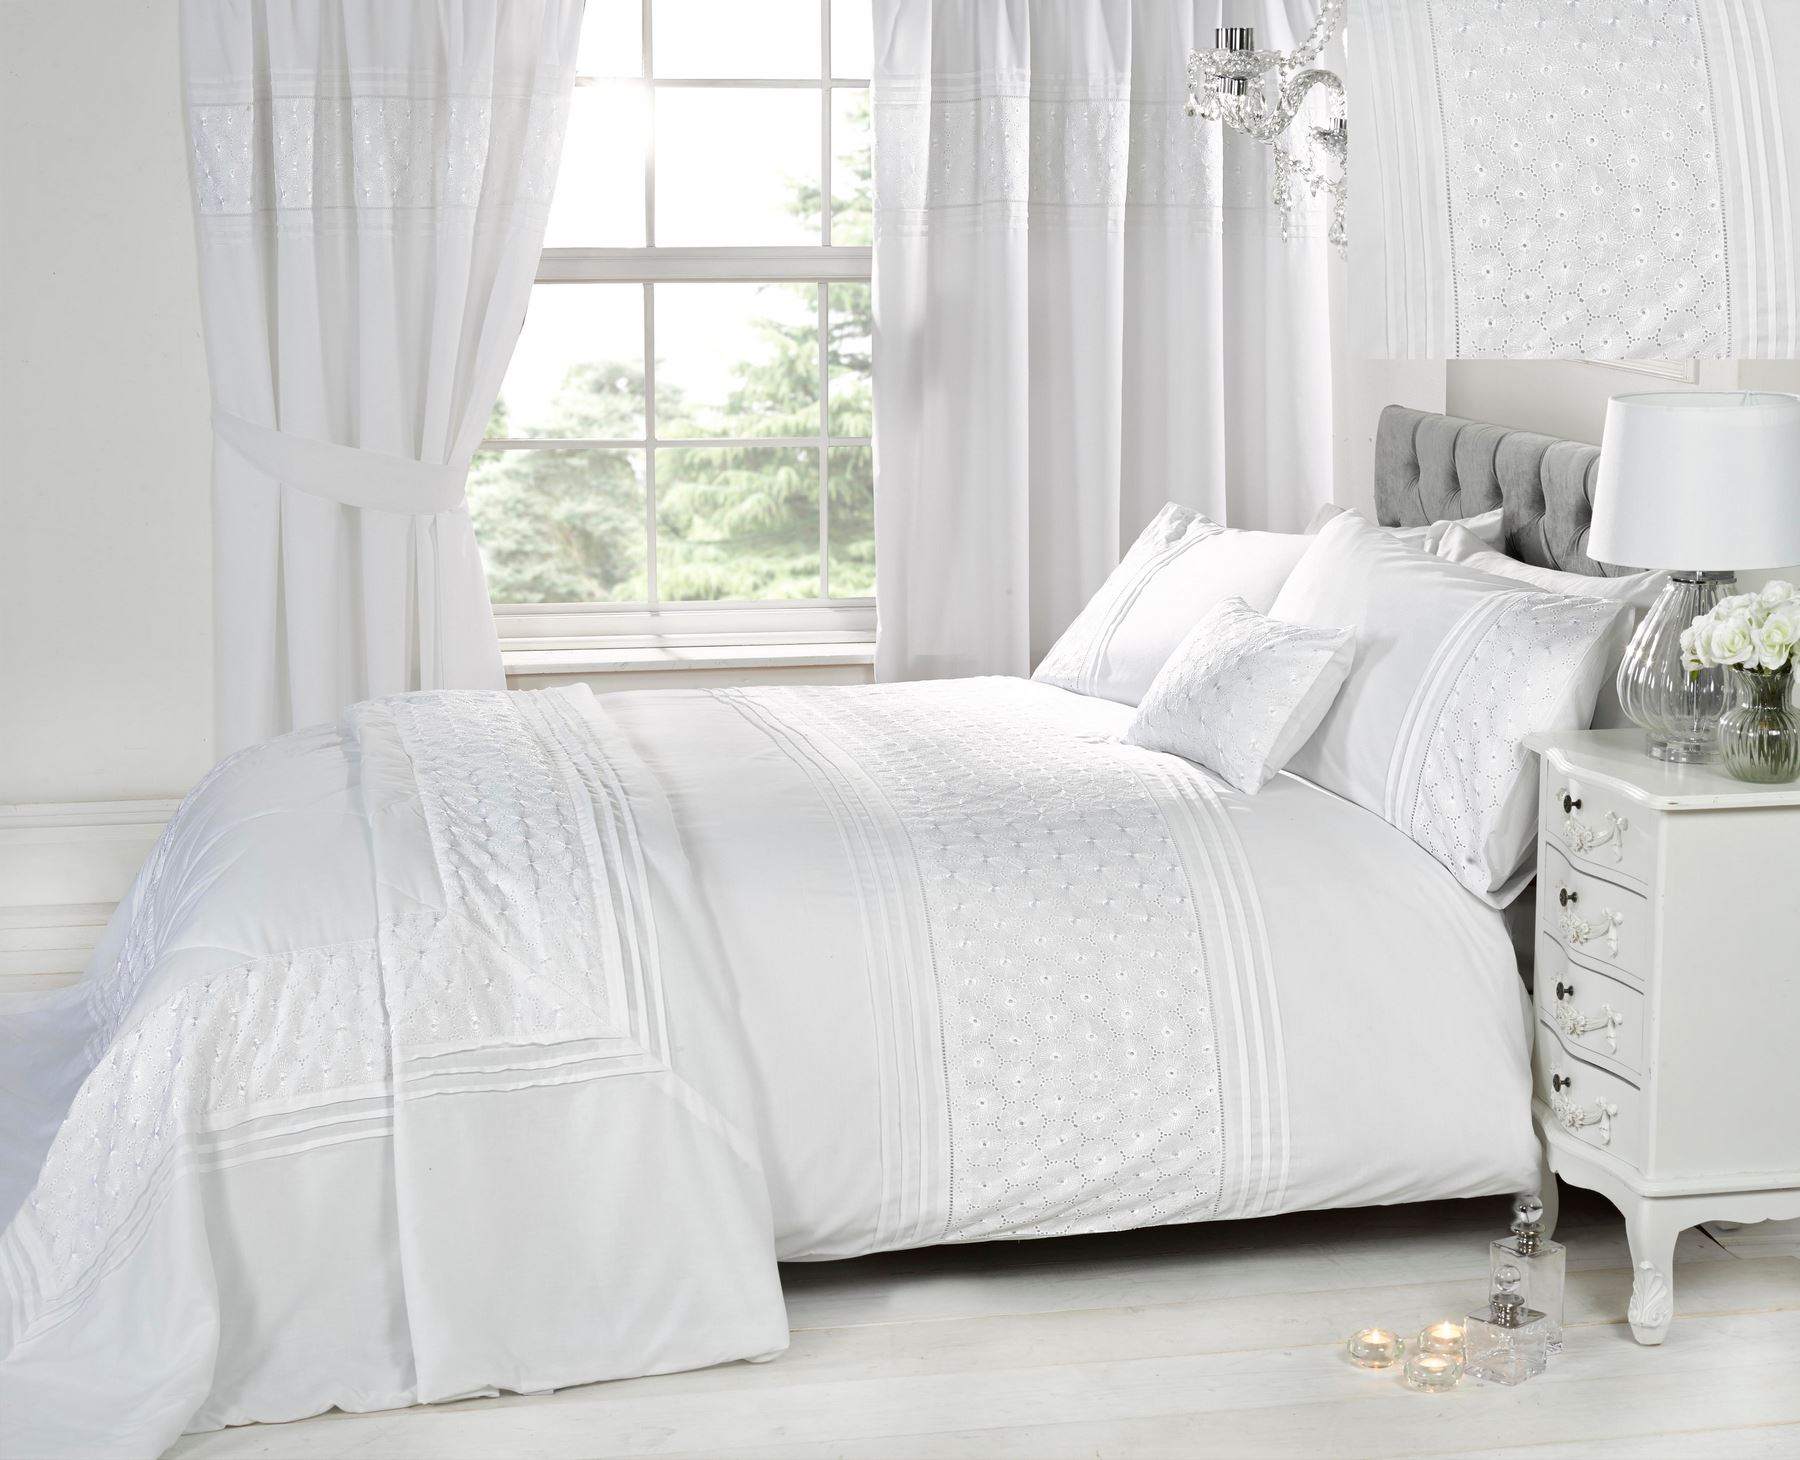 embroidered or laced quilt duvet cover bedding bed sets modern  - embroideredorlacedquiltduvetcoverbeddingbed